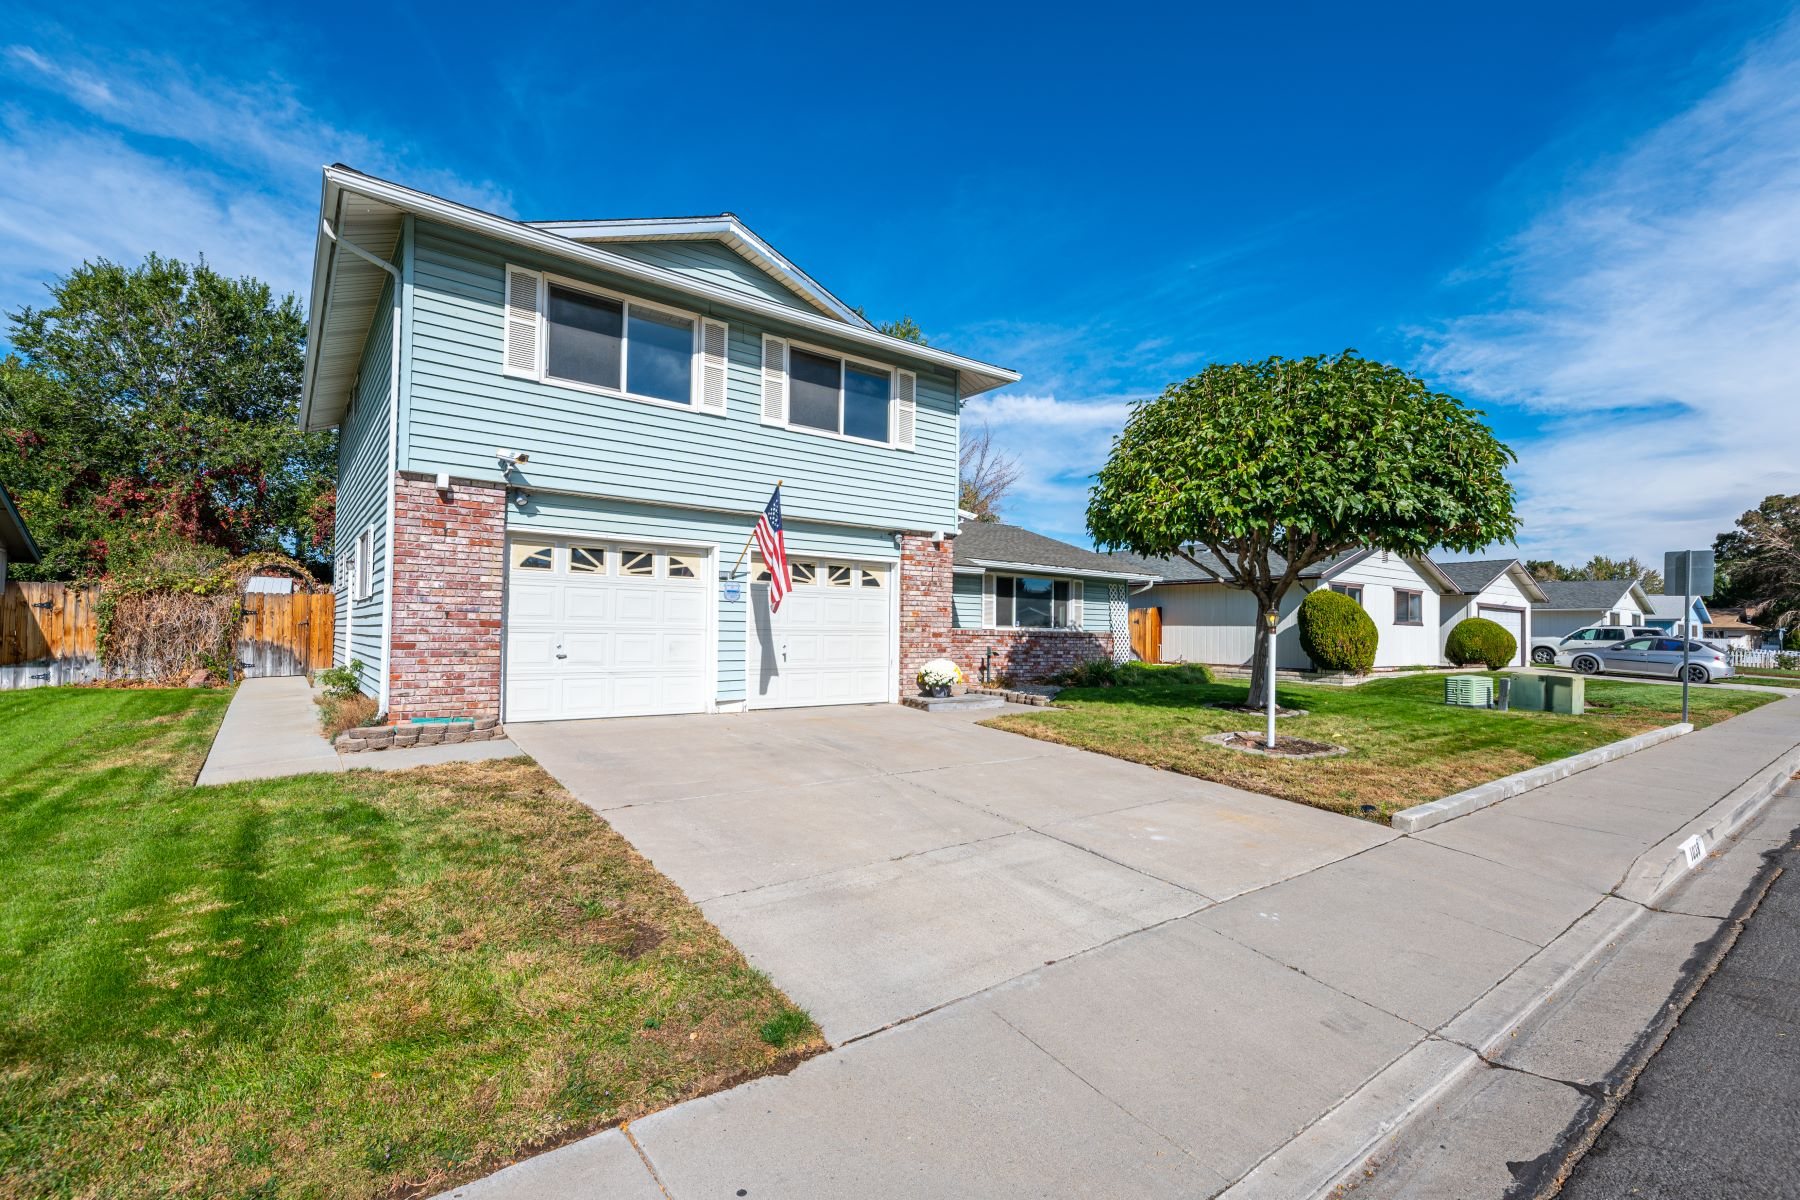 Additional photo for property listing at Charming Home with Fabulous Yard 1038 O Callaghan Dr. Sparks, Nevada 89434 United States